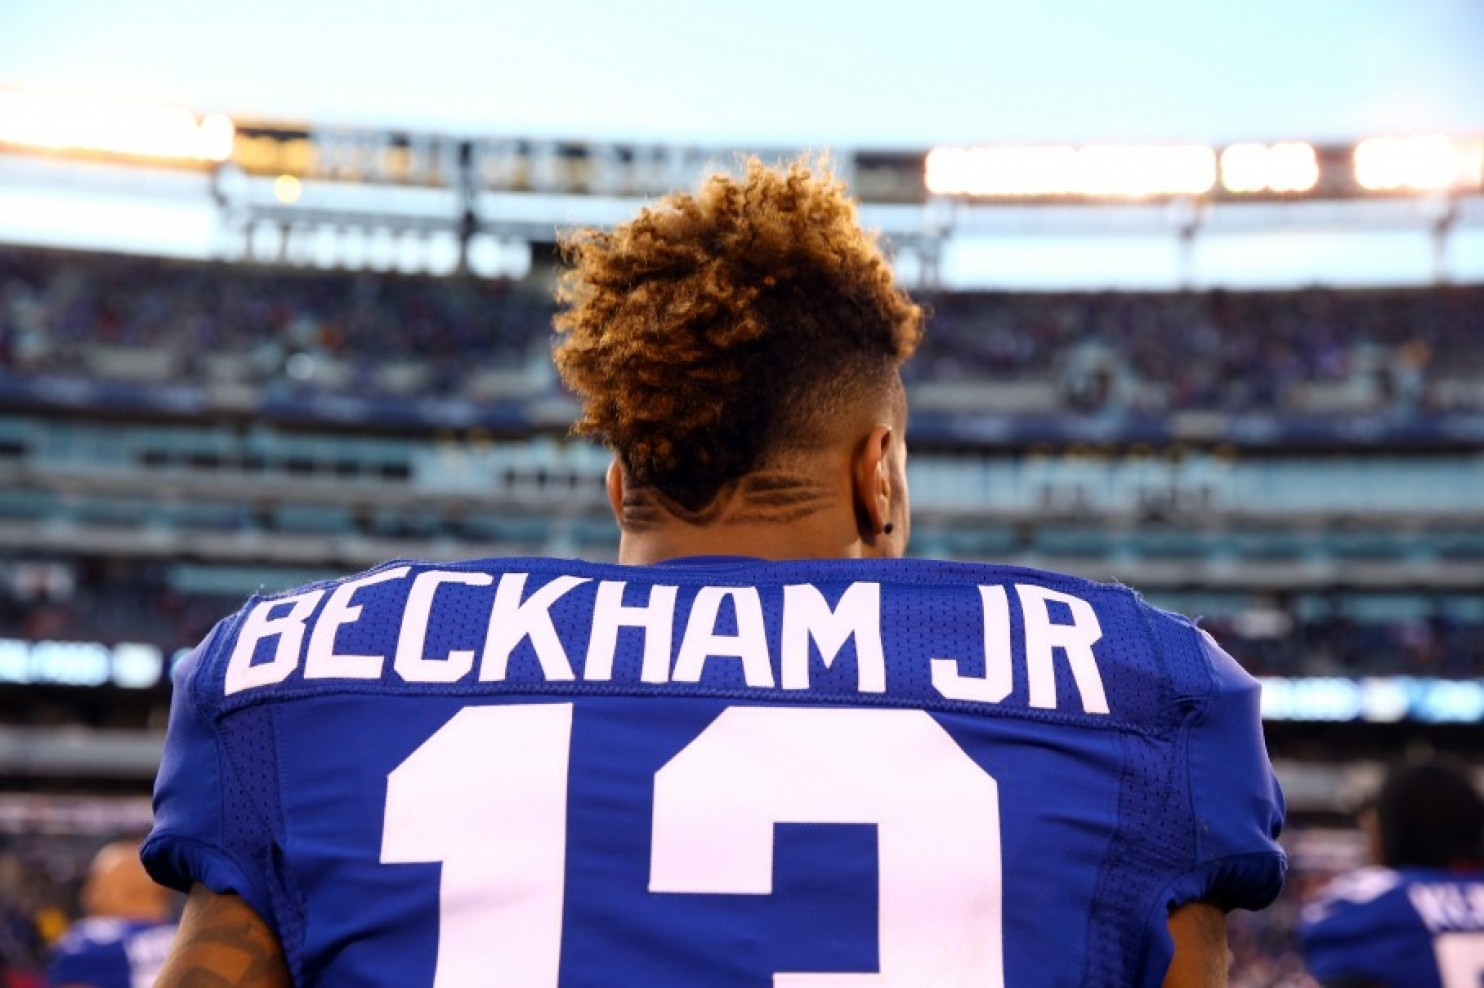 bowl seattle seahawks 12th man the 12s odell beckham jr wallpaper 1484x988